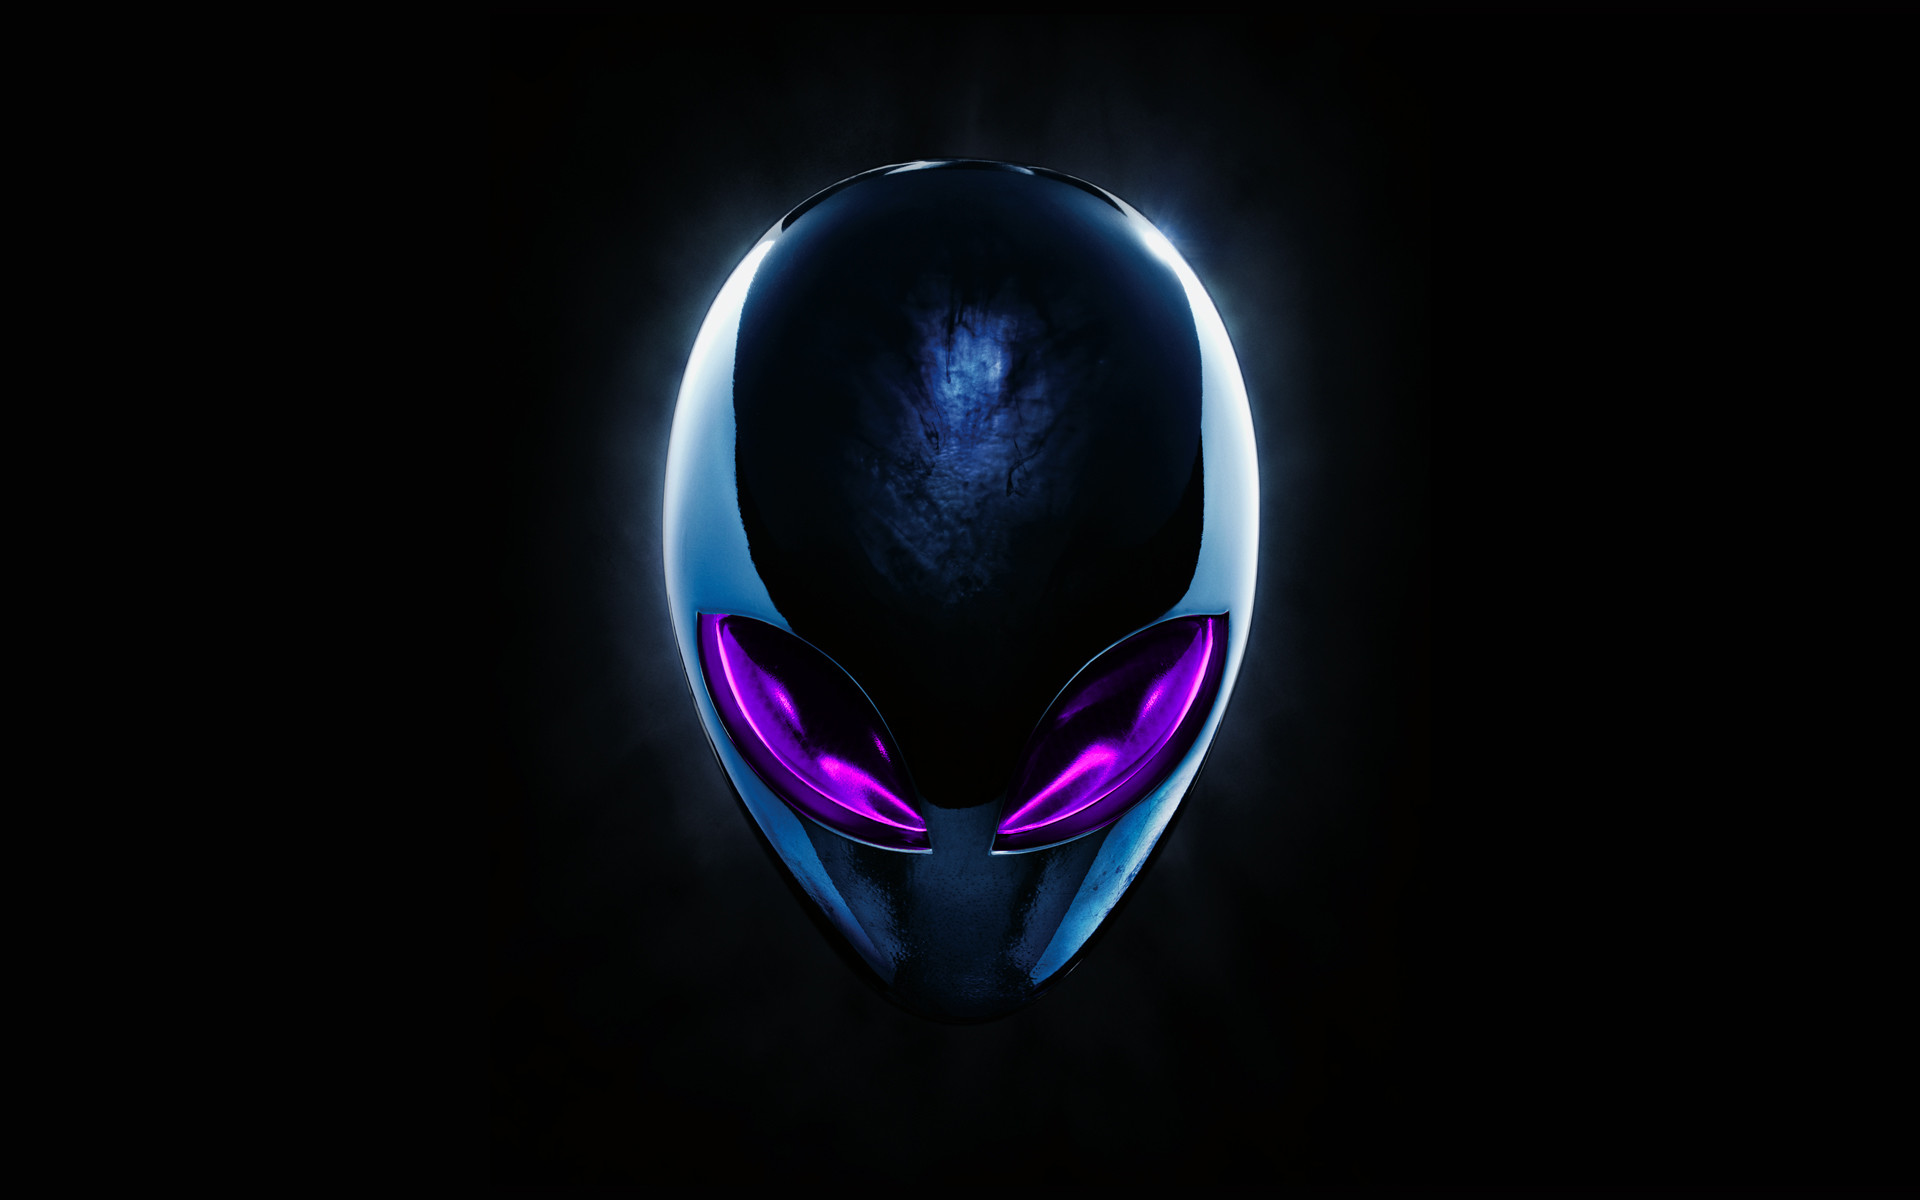 1920x1200 Alienware Skull Logo Wallpaper